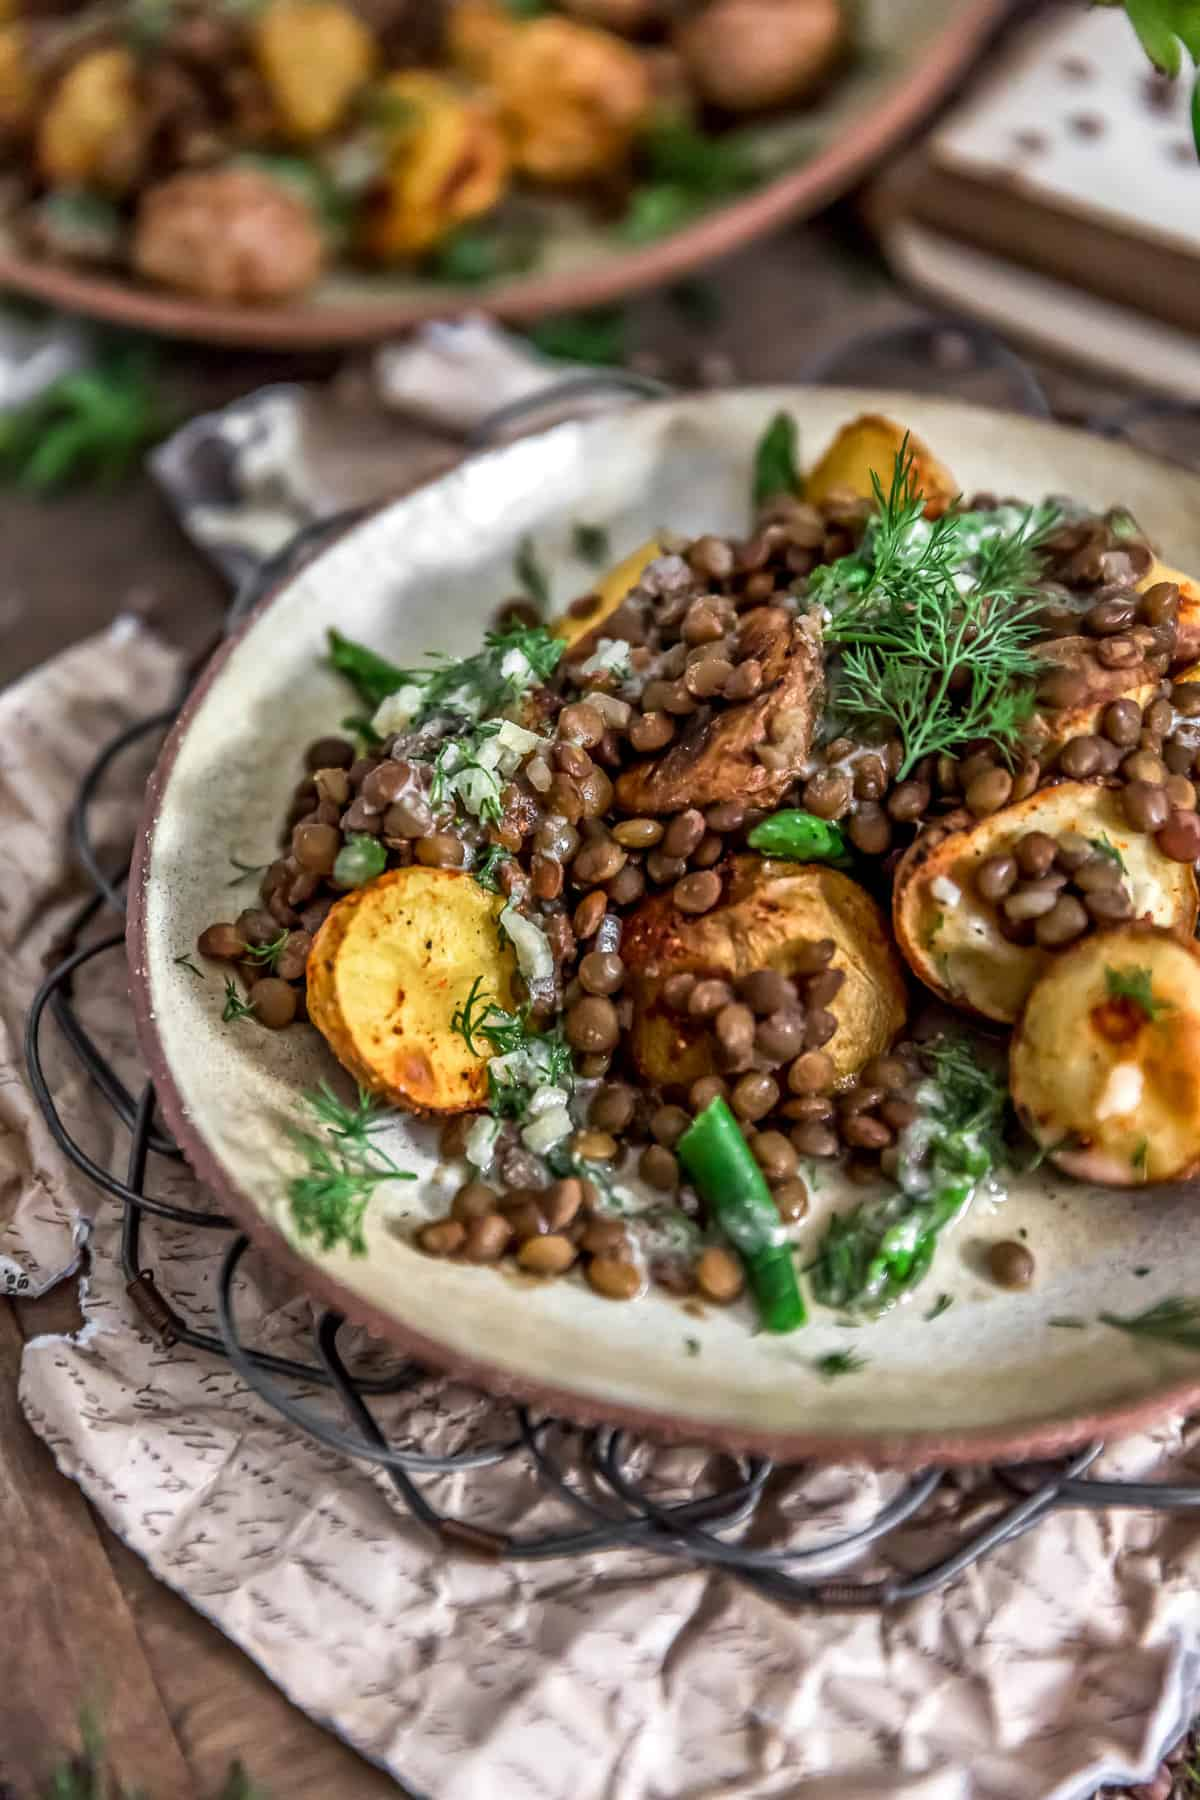 Sideview of Roasted Potatoes with Seasoned Lentils and Dill Sauce